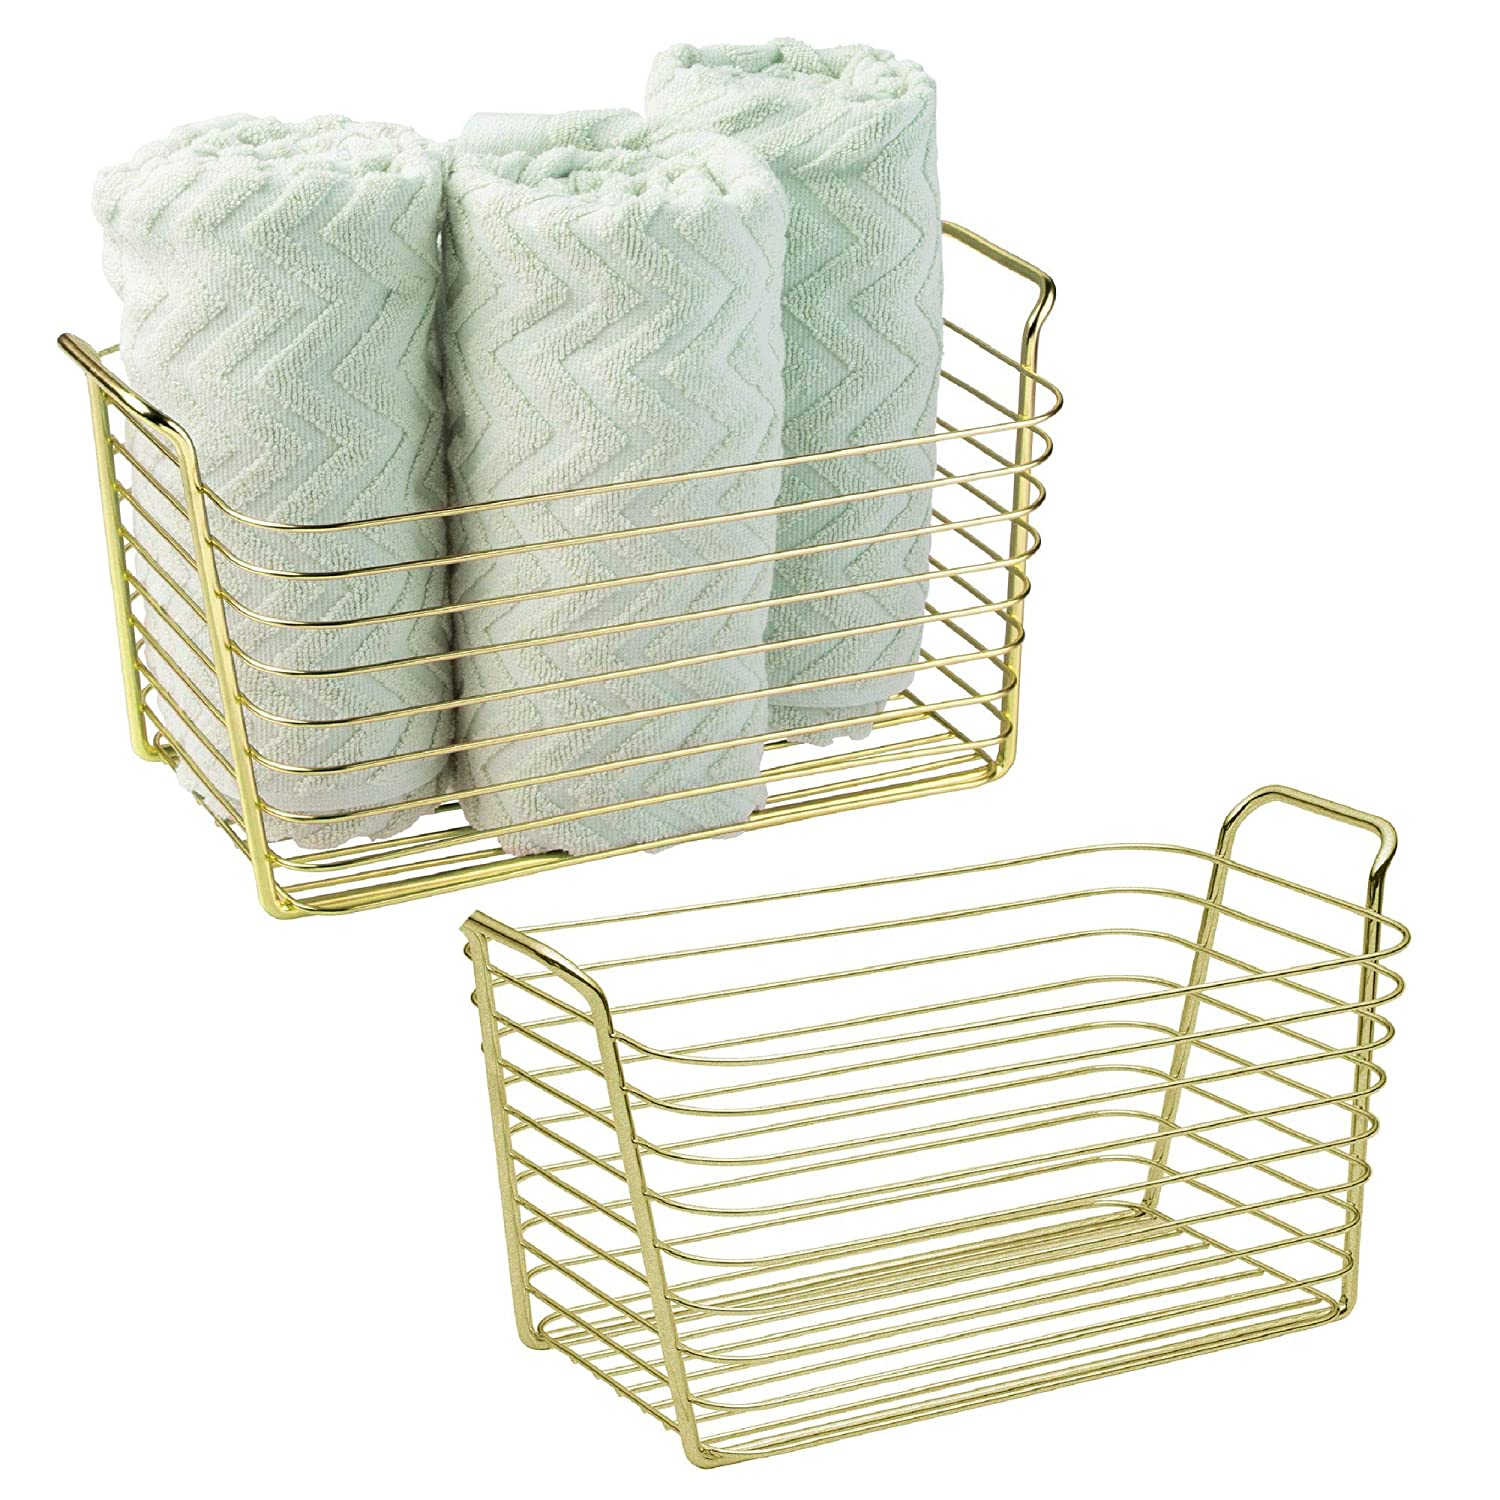 mDesign Storage Basket Bin with Built-in Handles for Organizing Hand Soaps, Body Wash, Shampoos, Lotion, Conditioners, Hand Towels, Hair Accessories, Body Spray - Medium, Pack of 2, Gold/Brass MetroDecor